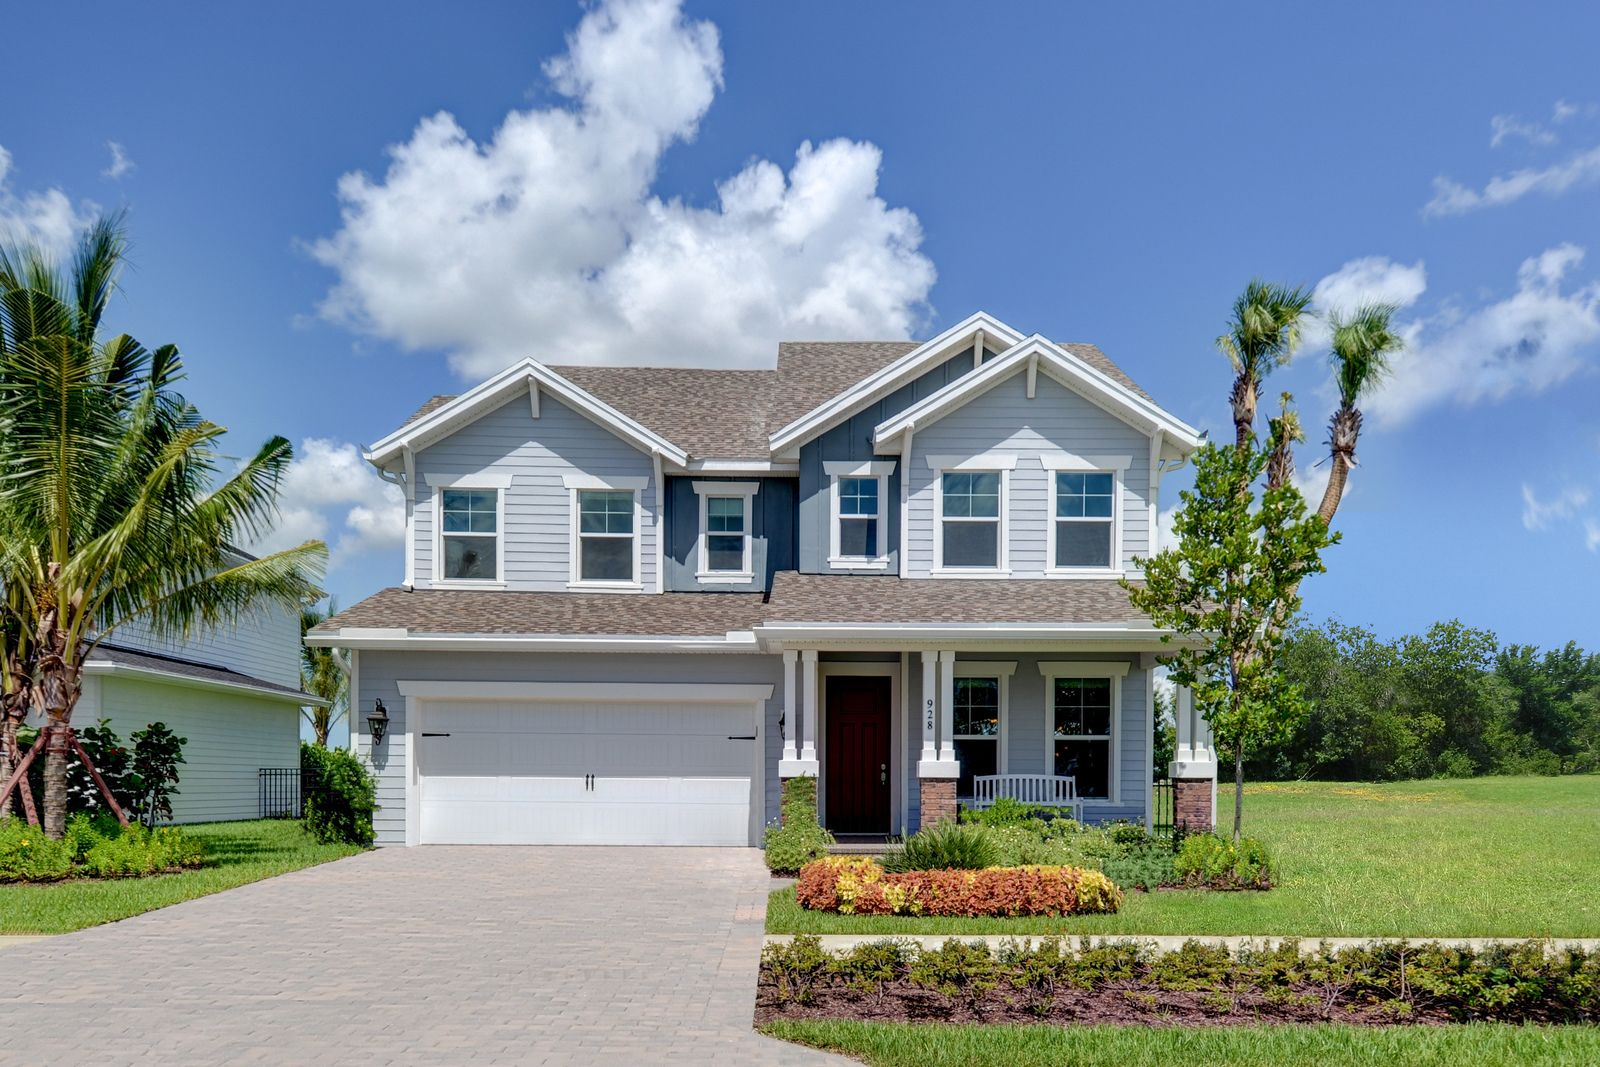 Single Family for Sale at Corin 1979 Wheel Barrow Bend Loxahatchee, Florida 33470 United States